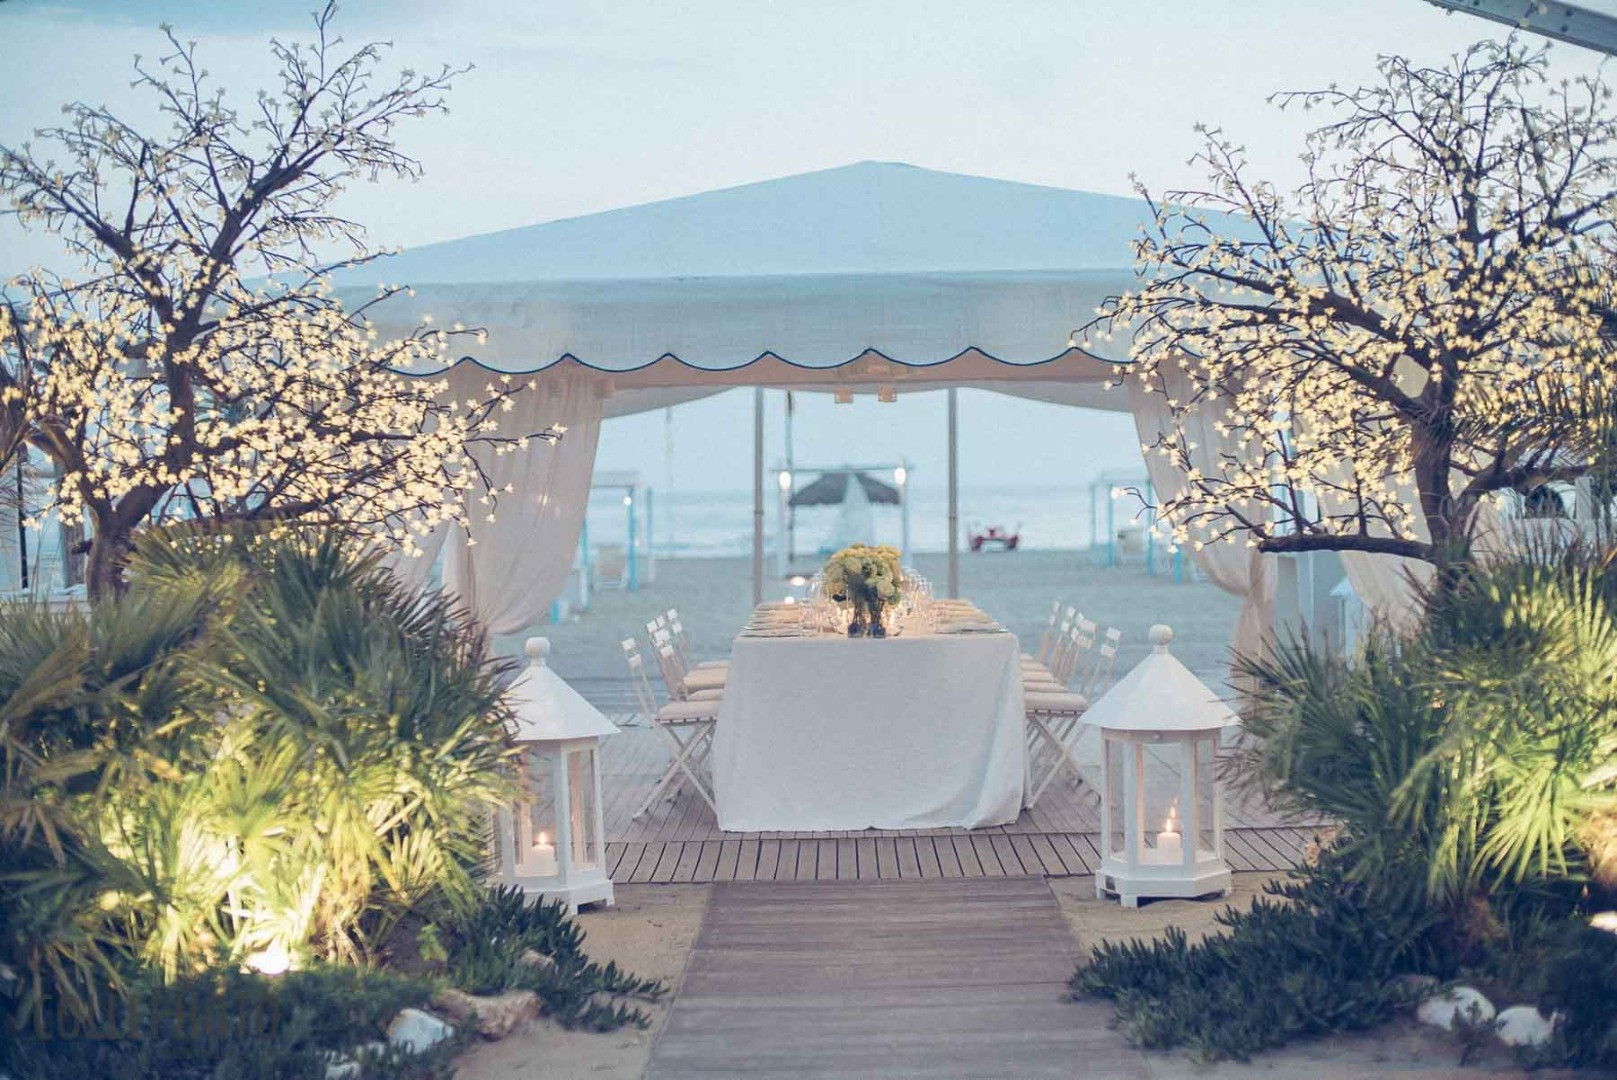 This wedding is dedicated to those who have always dreamed of getting married by the sea.